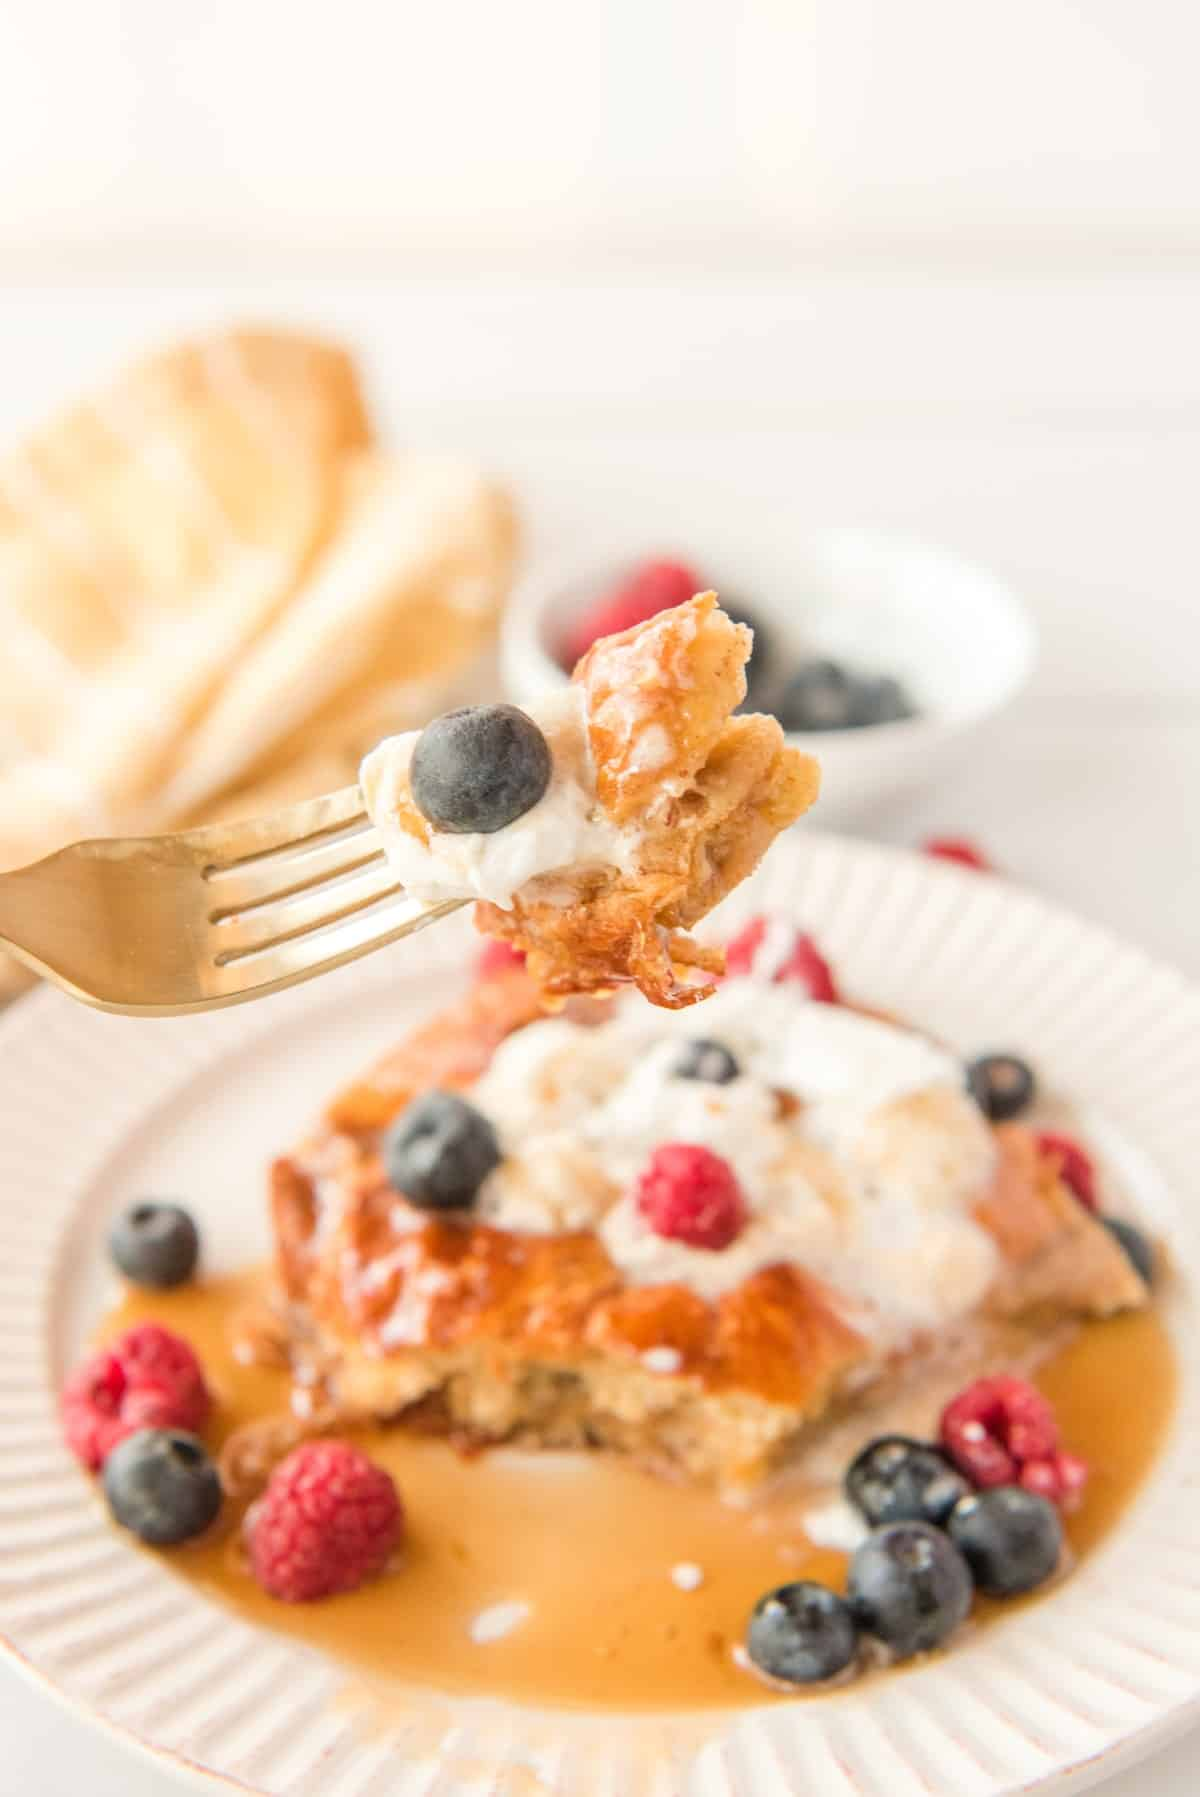 Forkful of French toast and a blueberry.